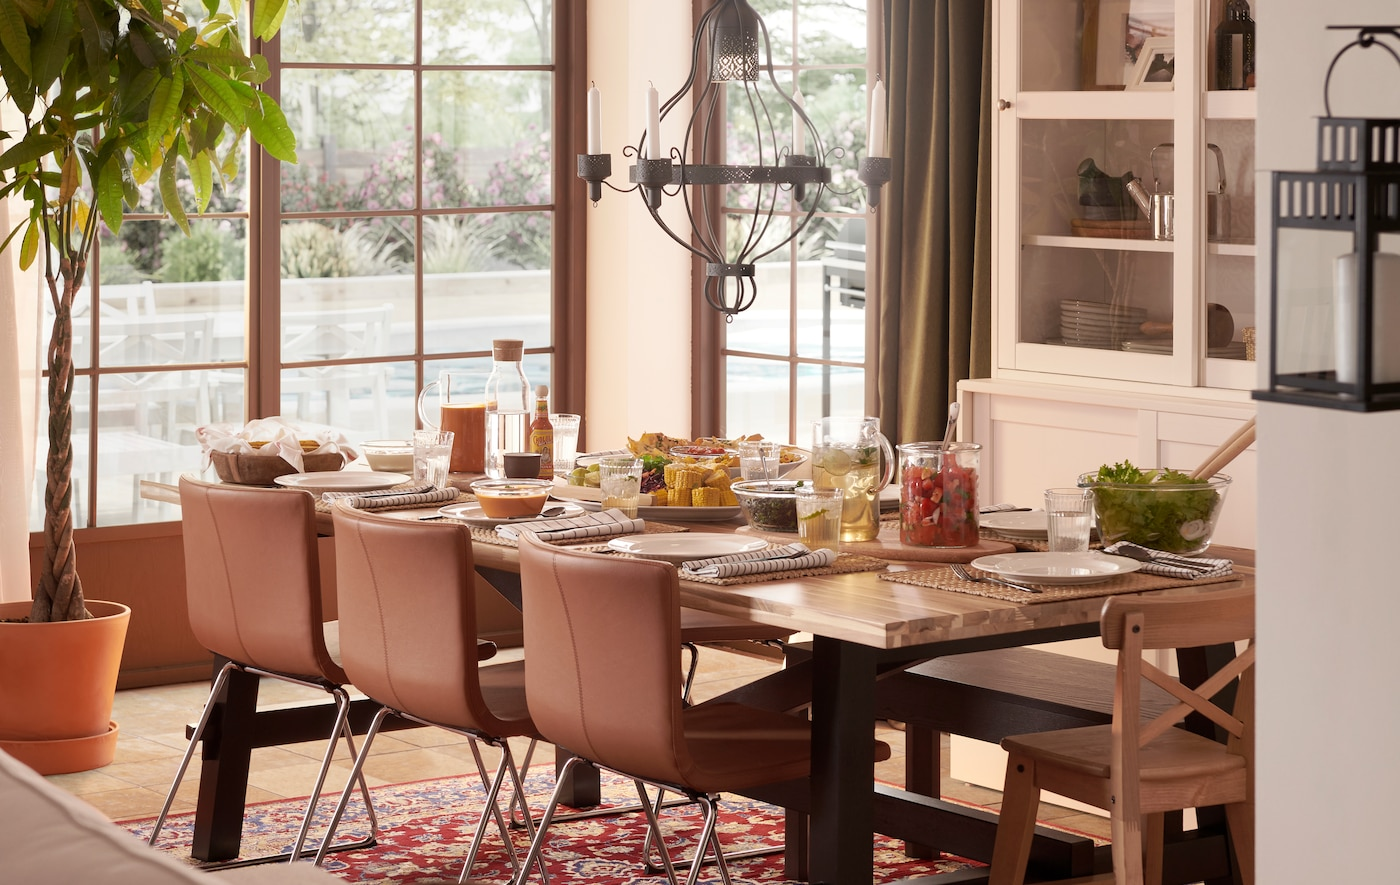 5 basics to set the table for your gatherings at home